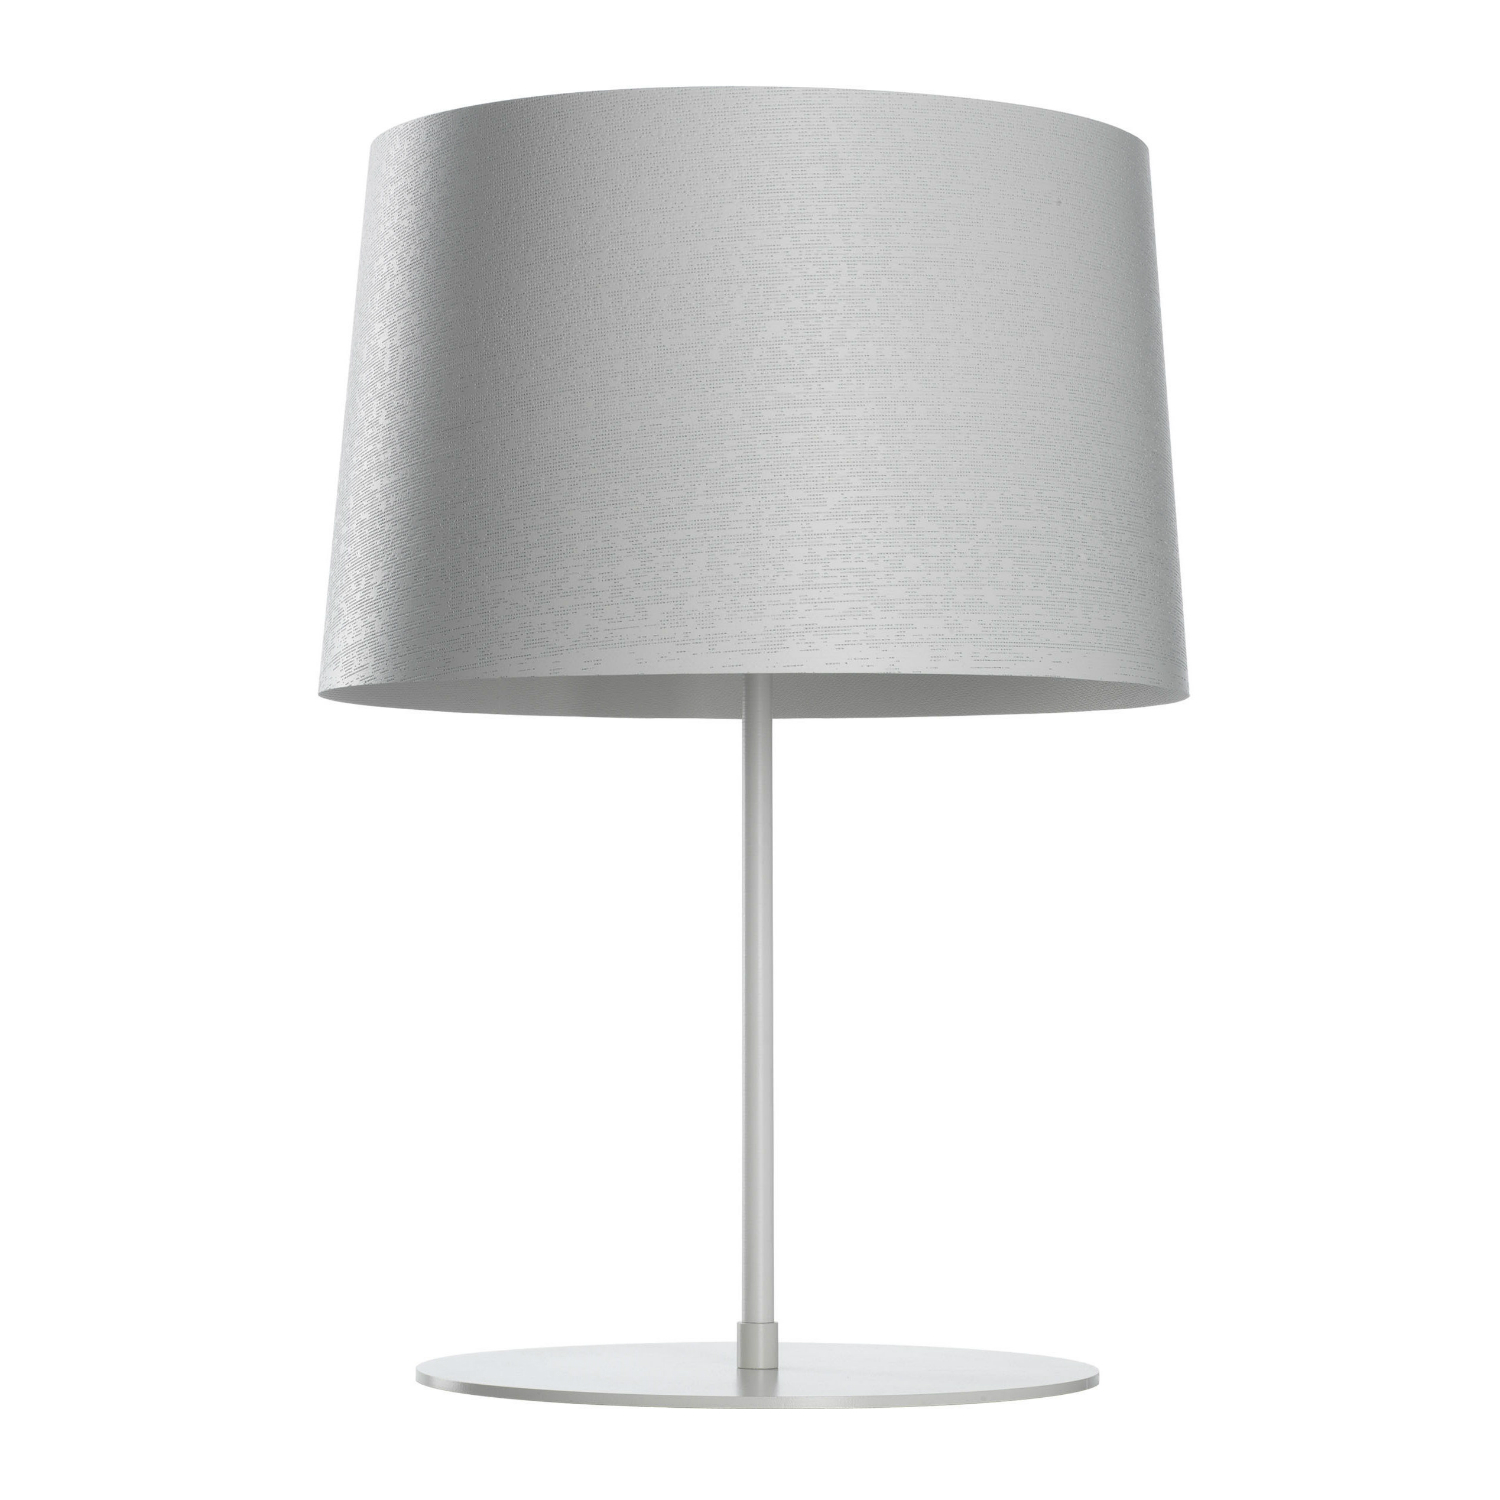 Twiggy XL Table Lamp E27 3x77w Wwhite